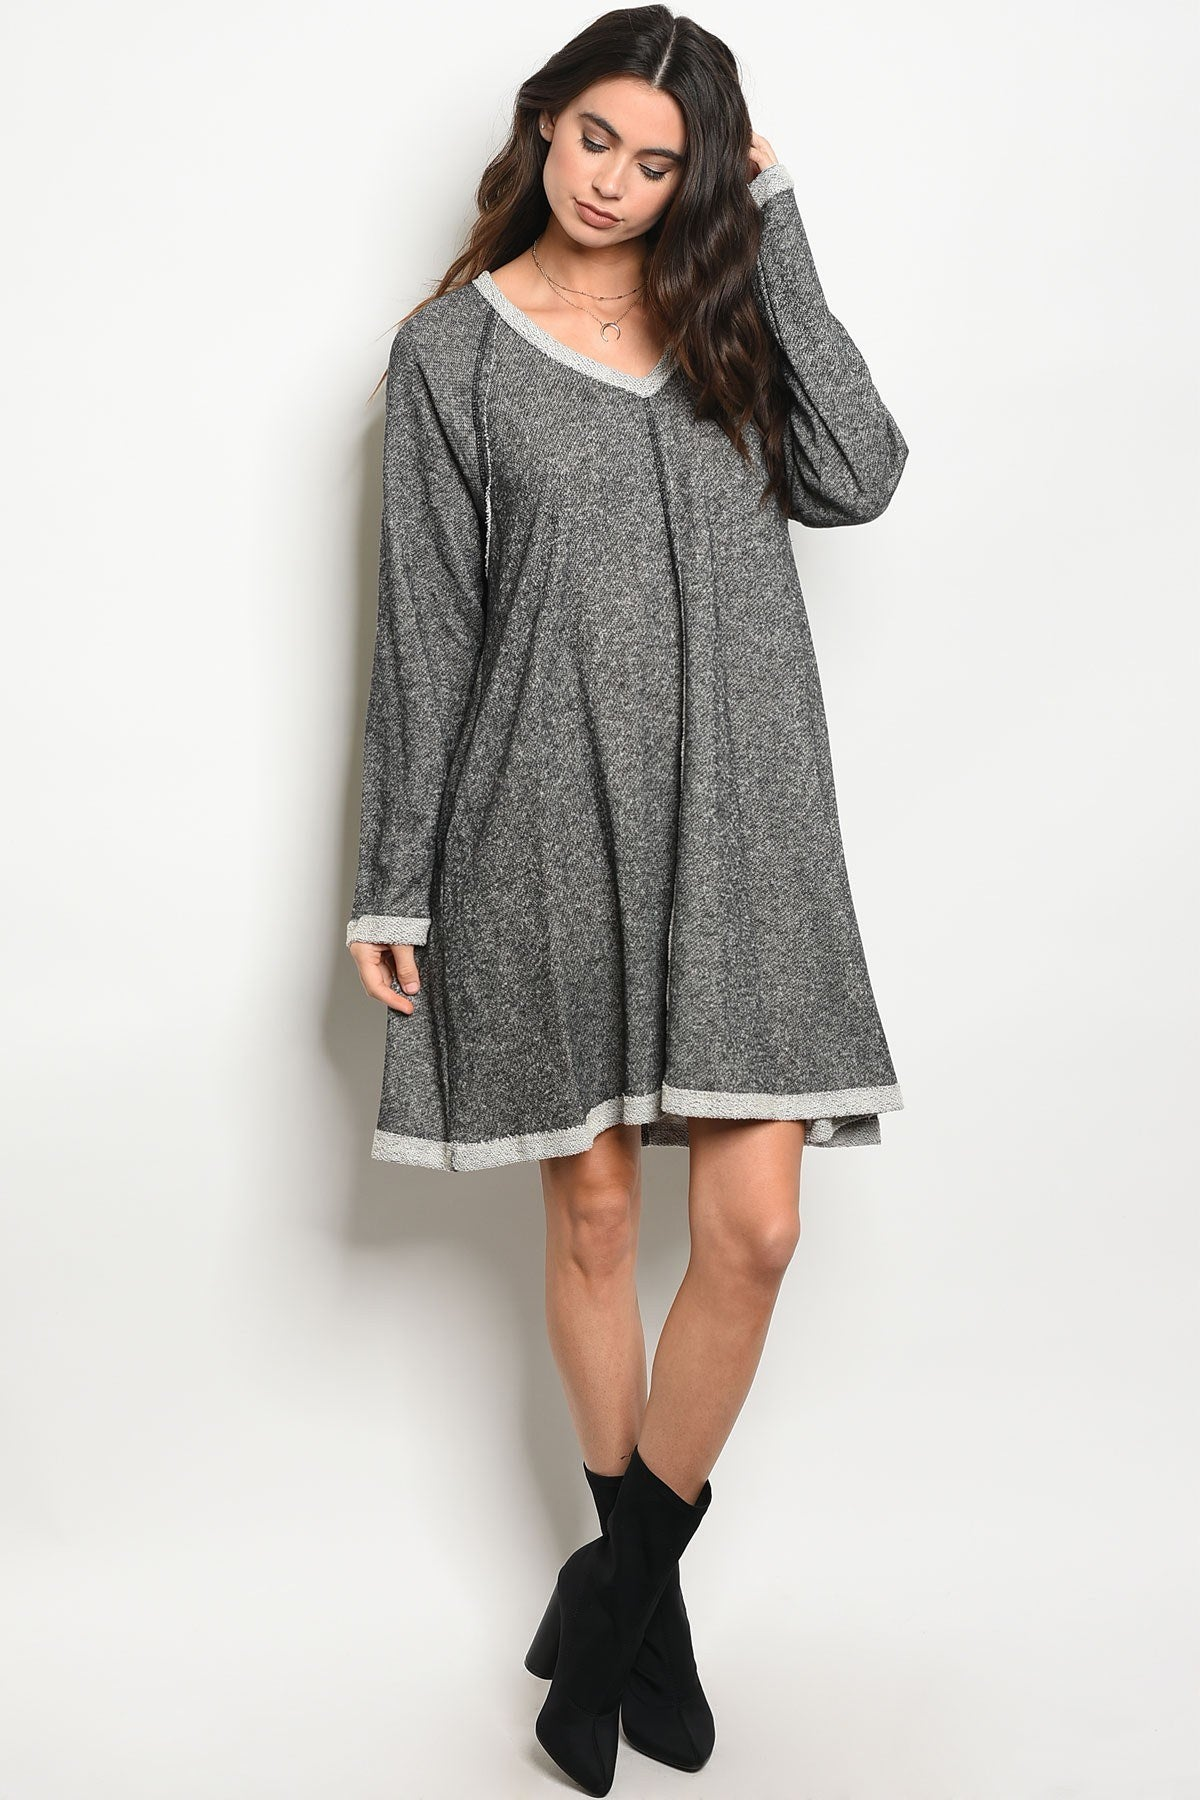 Ladies fashion long sleeve knit sweater skater dress with a scoop neckline, featuring pocket details-S-MY UPSCALE STORE